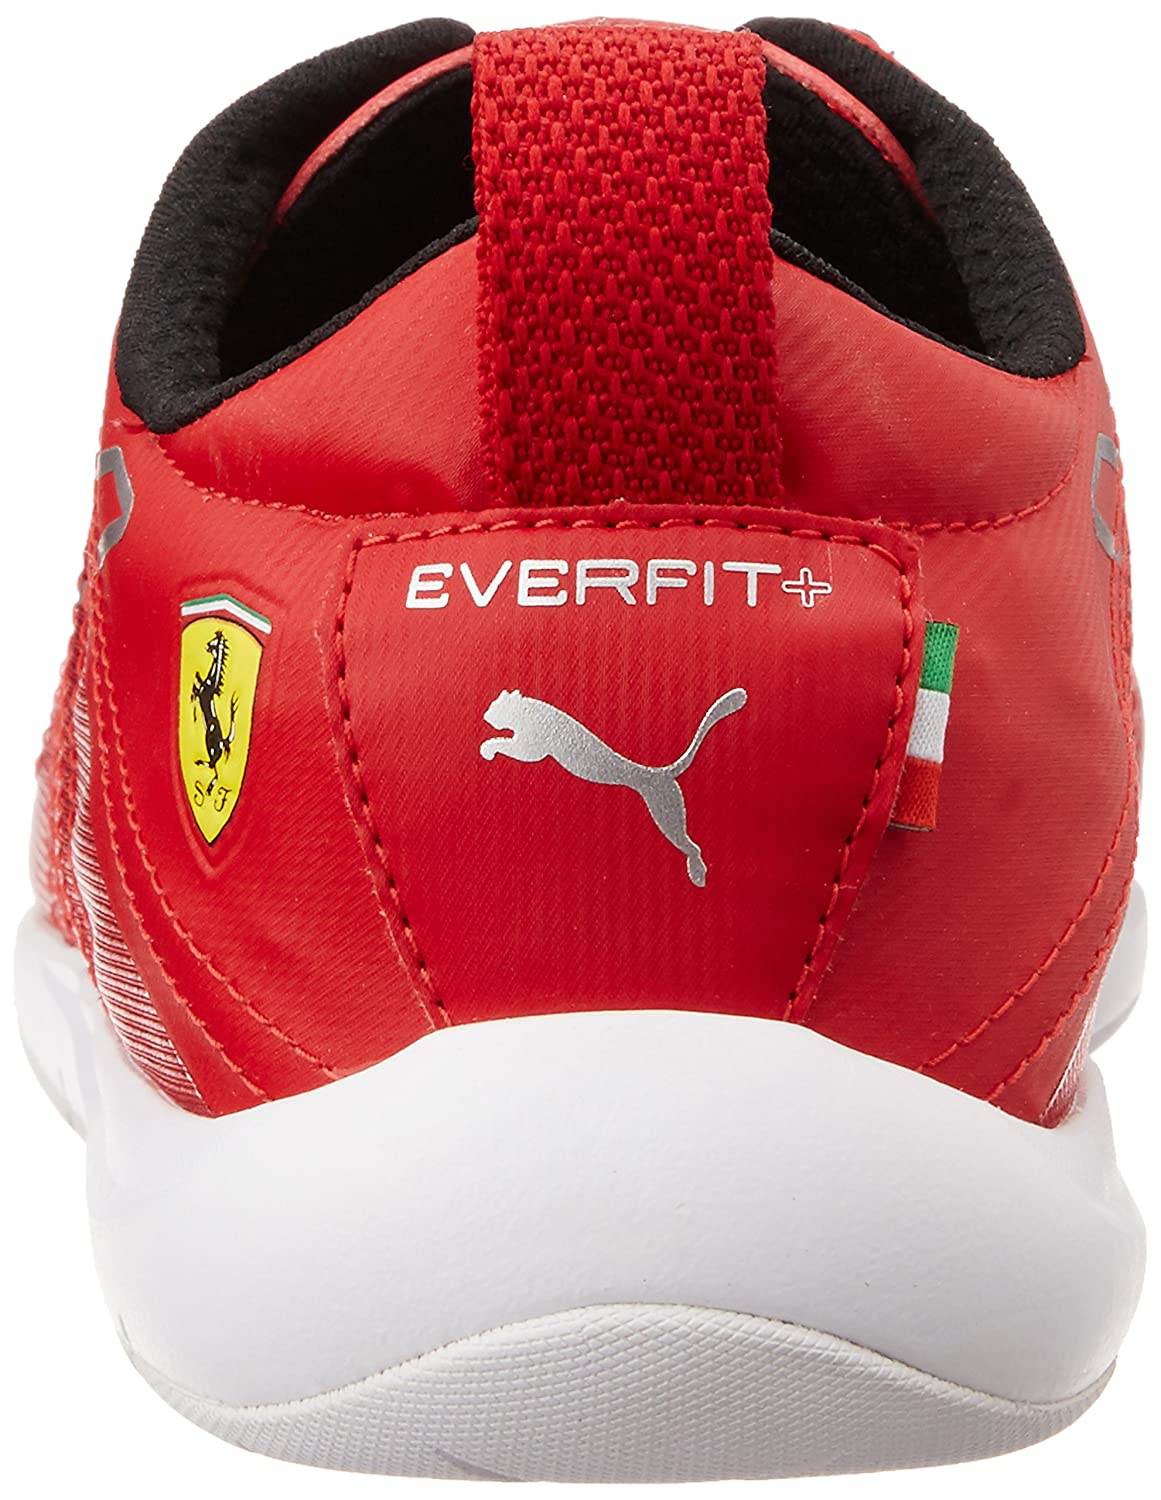 e37077d9b8d940 Puma Men s TechLo Everfit+ Night Cat SF Rosso Corsa Sneakers - 7 UK India  (40.5 EU)  Buy Online at Low Prices in India - Amazon.in